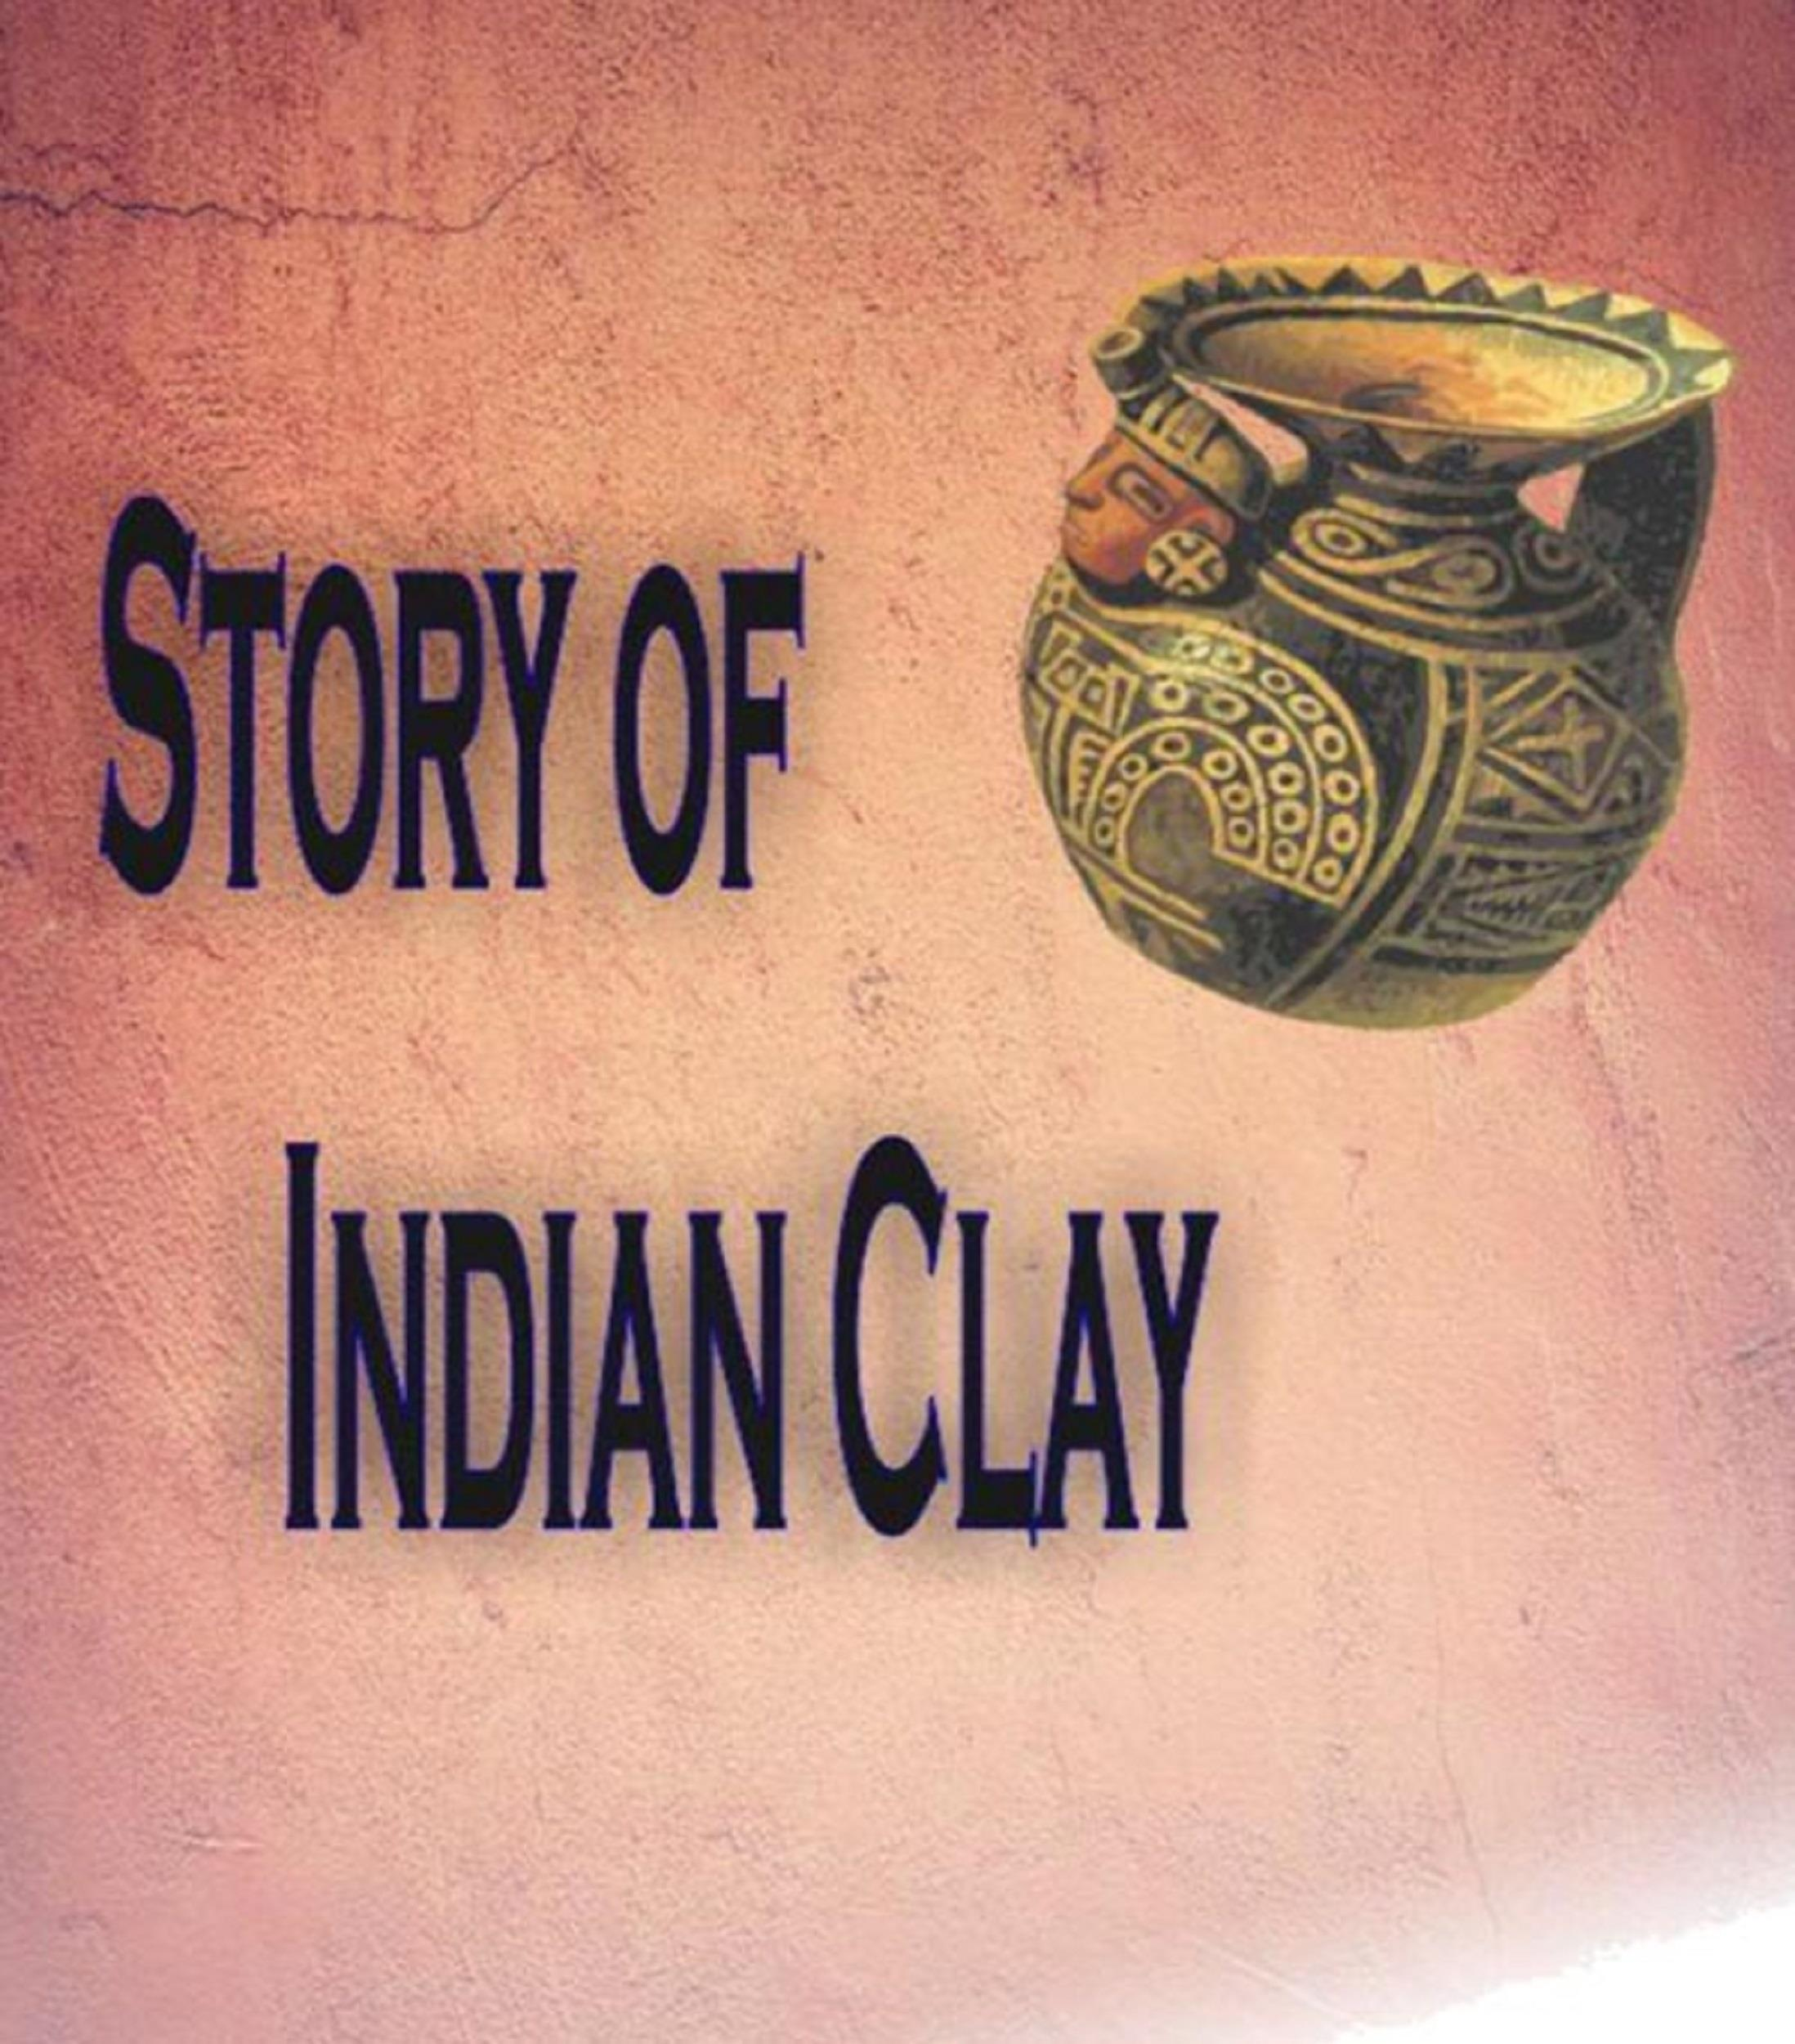 Story of Indian  Clay